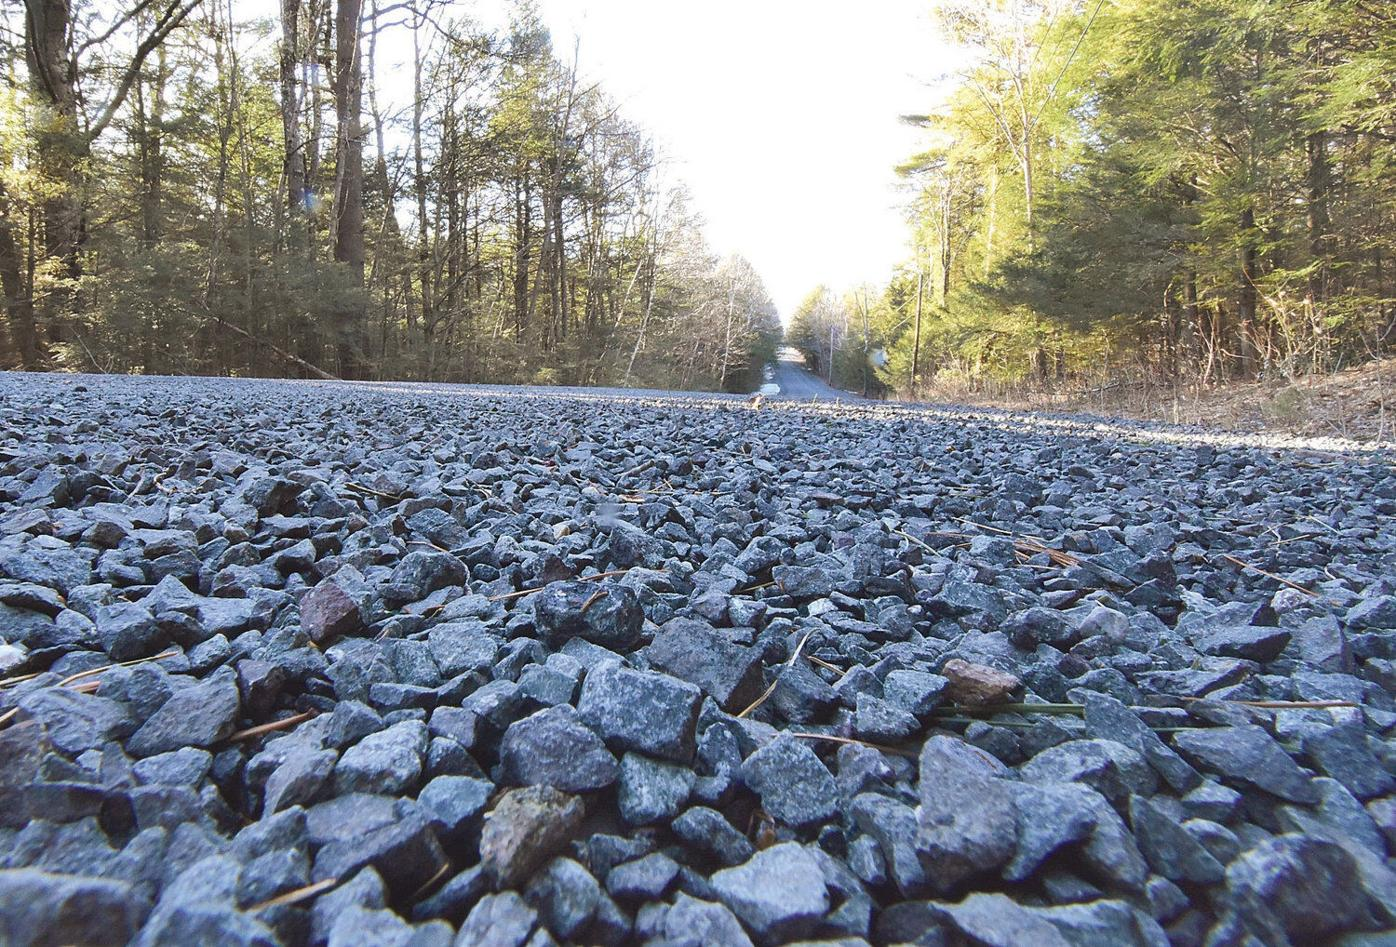 Sandisfield road still a mess more than 2 years after pipeline build